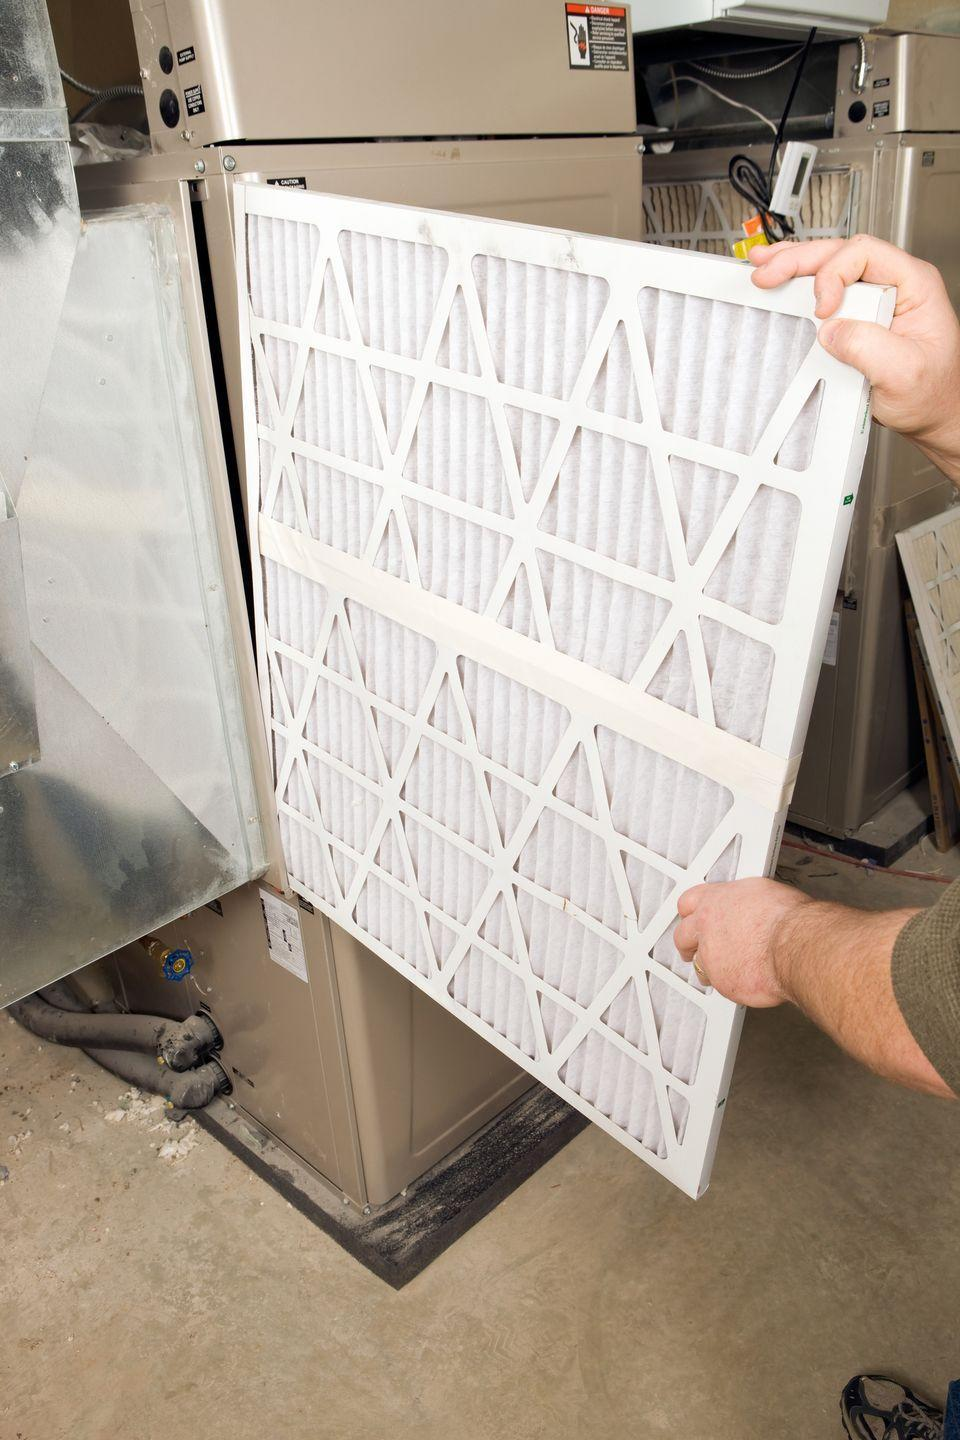 "<p>""While replacing the filter, spend a minute or so looking around the furnace to make sure you don't hear any strange noises, see any leaks, or any lights flashing that may indicate a problem,"" says Bill Samuel, a general contractor and residential real estate developer with <a href=""http://www.blueladderdevelopment.com/"" rel=""nofollow noopener"" target=""_blank"" data-ylk=""slk:Blue Ladder Development"" class=""link rapid-noclick-resp"">Blue Ladder Development</a>. This will help ensure that your unit is operating at top efficiency. If you have humidifier pad installed in your furnace, you'll want to replace a fresh pad and adjust the knob from off to about 40-50 percent humidity.</p>"